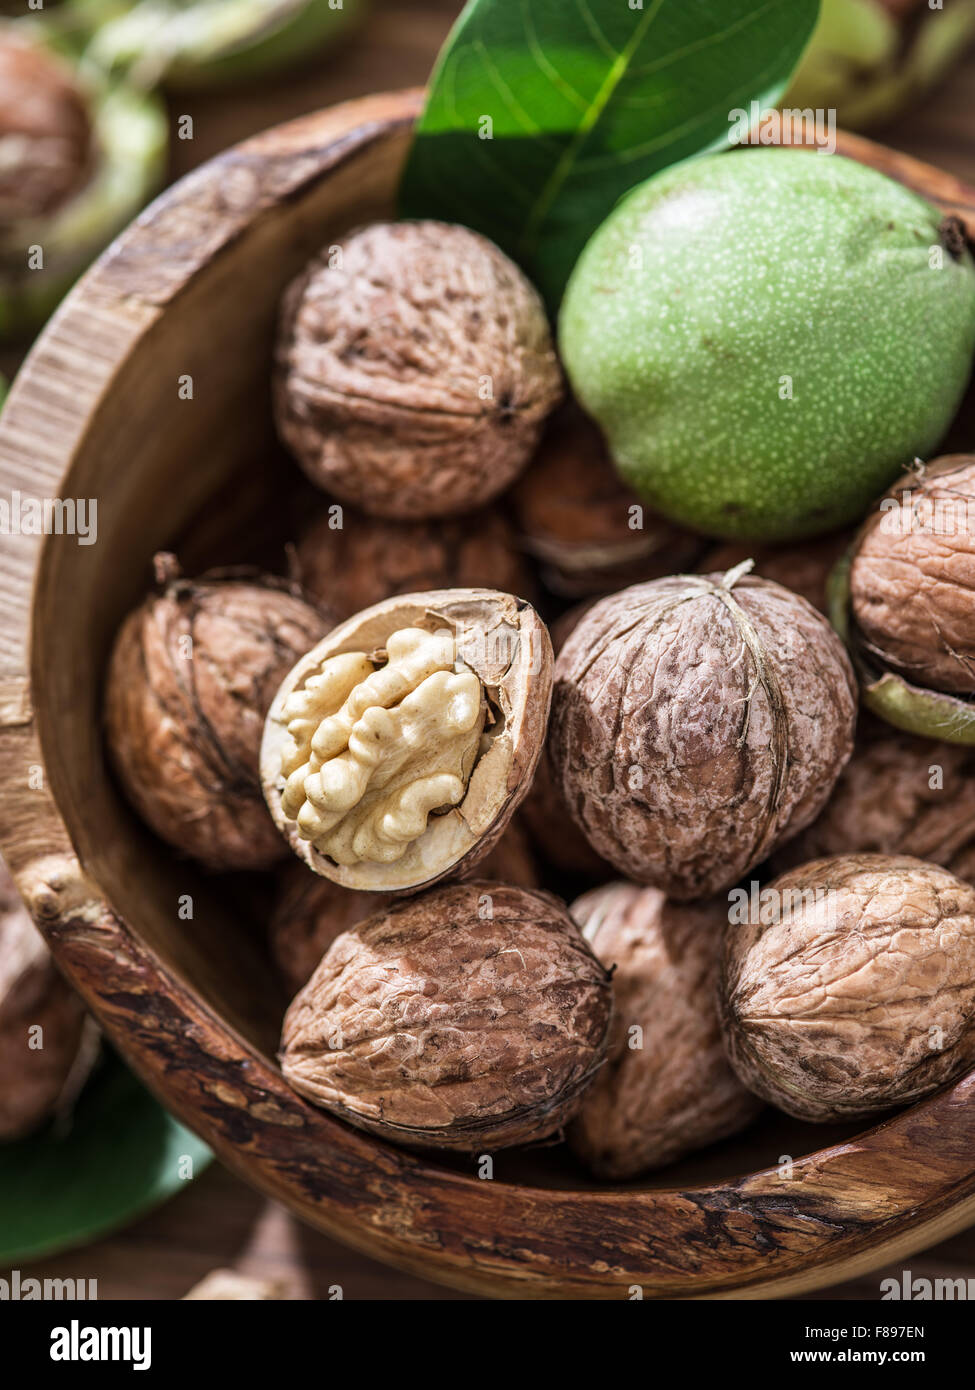 Walnuts in the wooden bowl on the table. - Stock Image